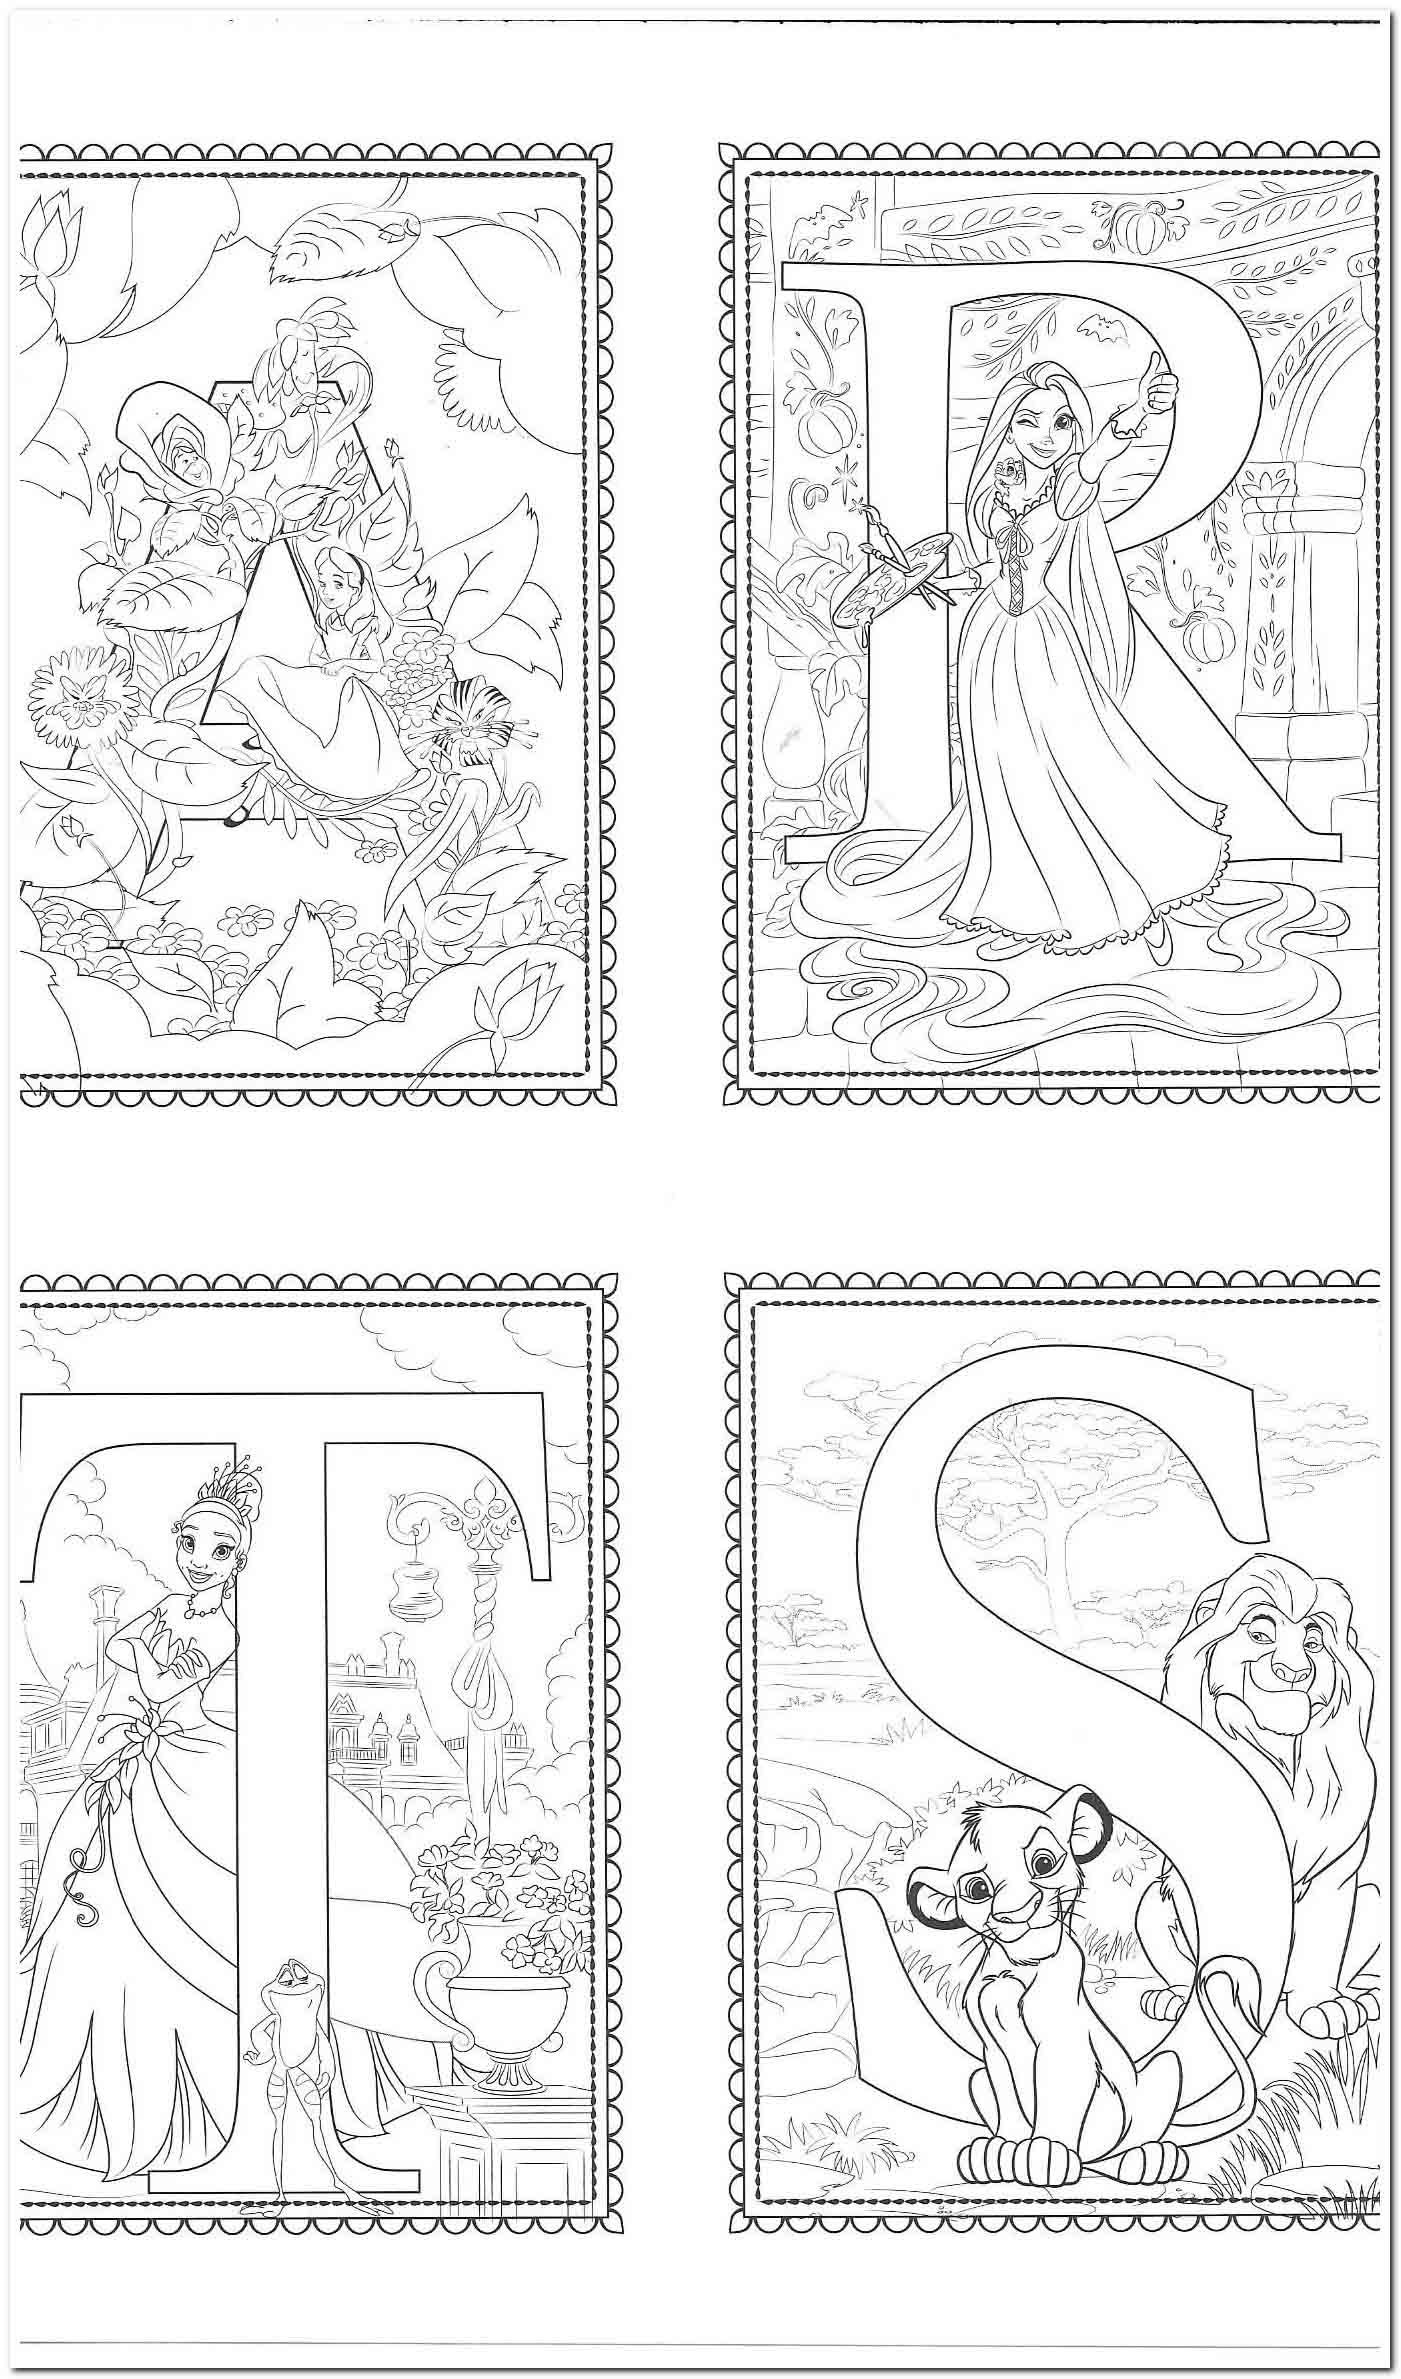 21 Coloring Pages Coloring Pages For Preschoolers In 2020 Disney Alphabet Abc Coloring Pages Alphabet Coloring Pages [ 2379 x 1401 Pixel ]